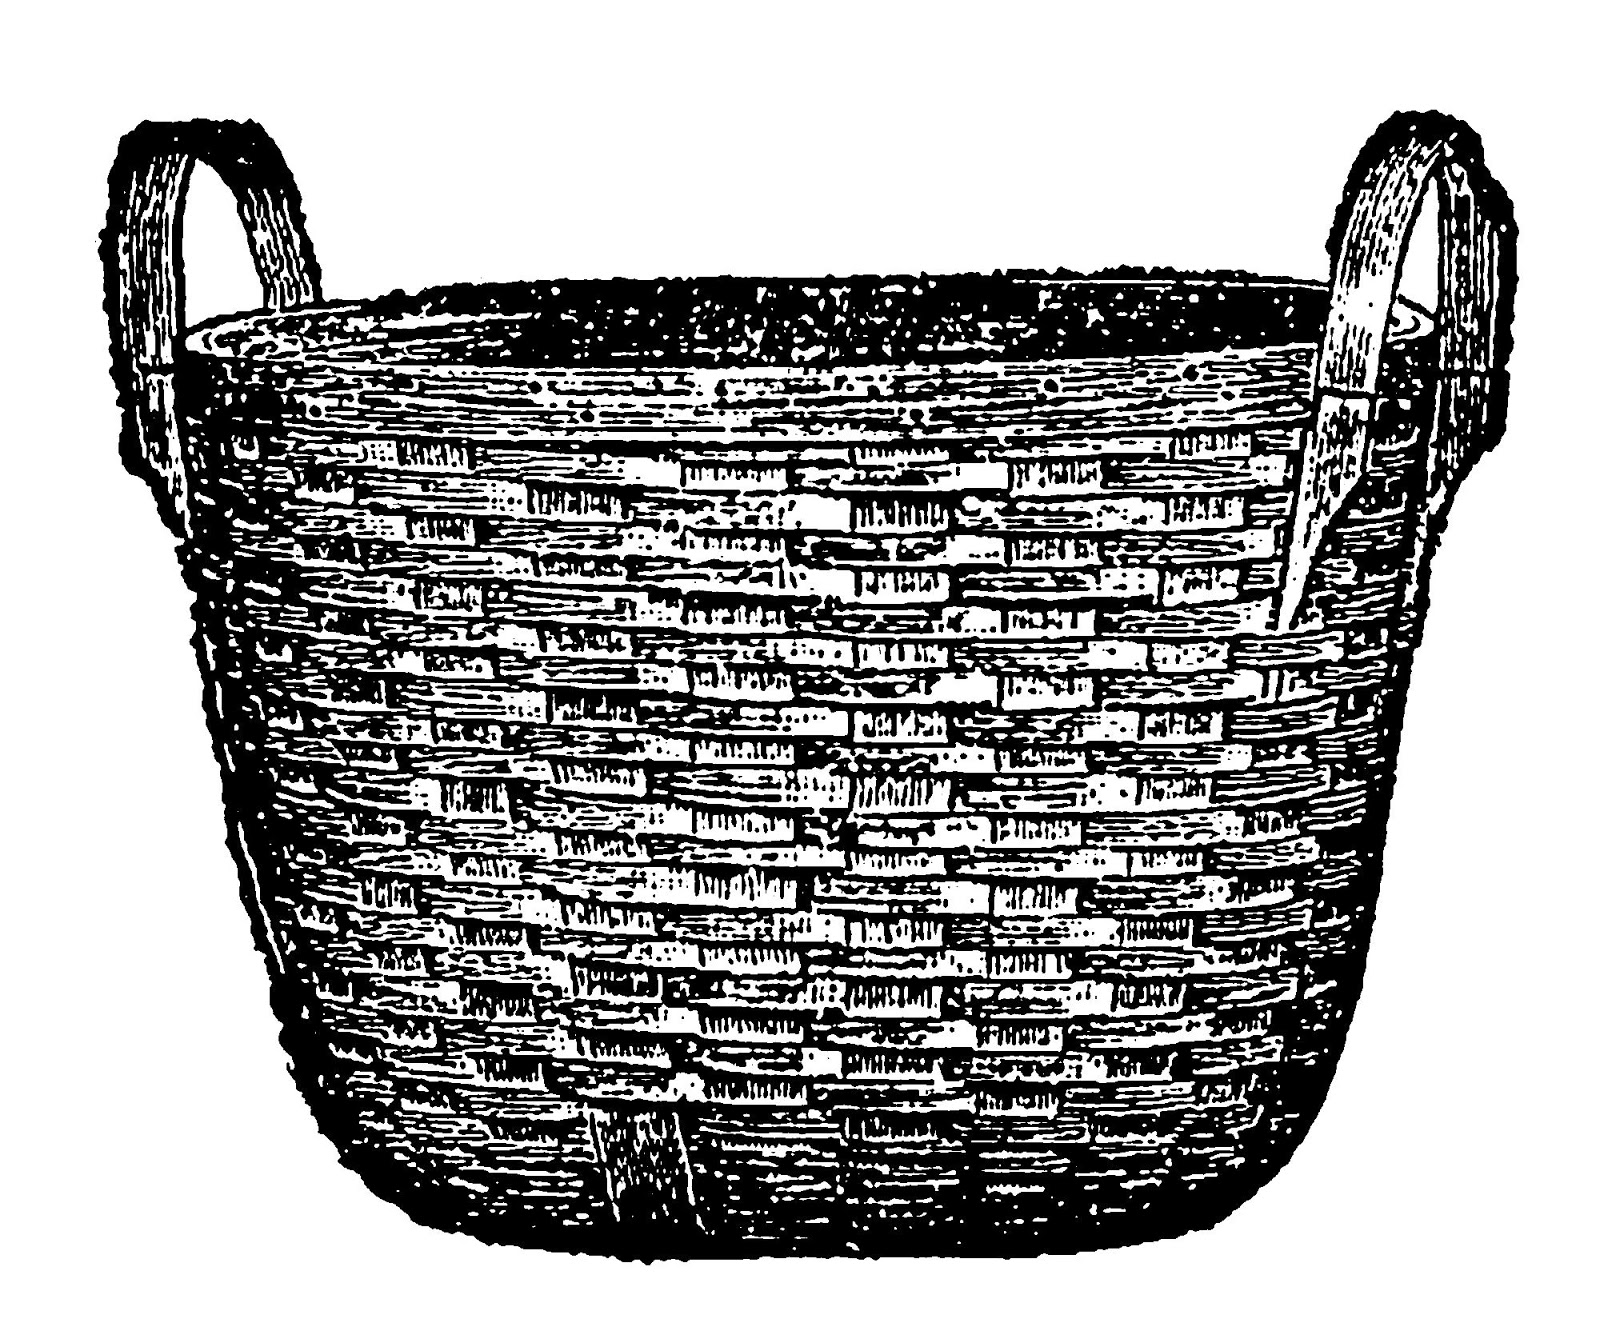 medium resolution of digital stamp design laundry wood woven basket illustrations jpg 1600x1319 vintage laundry basket clipart